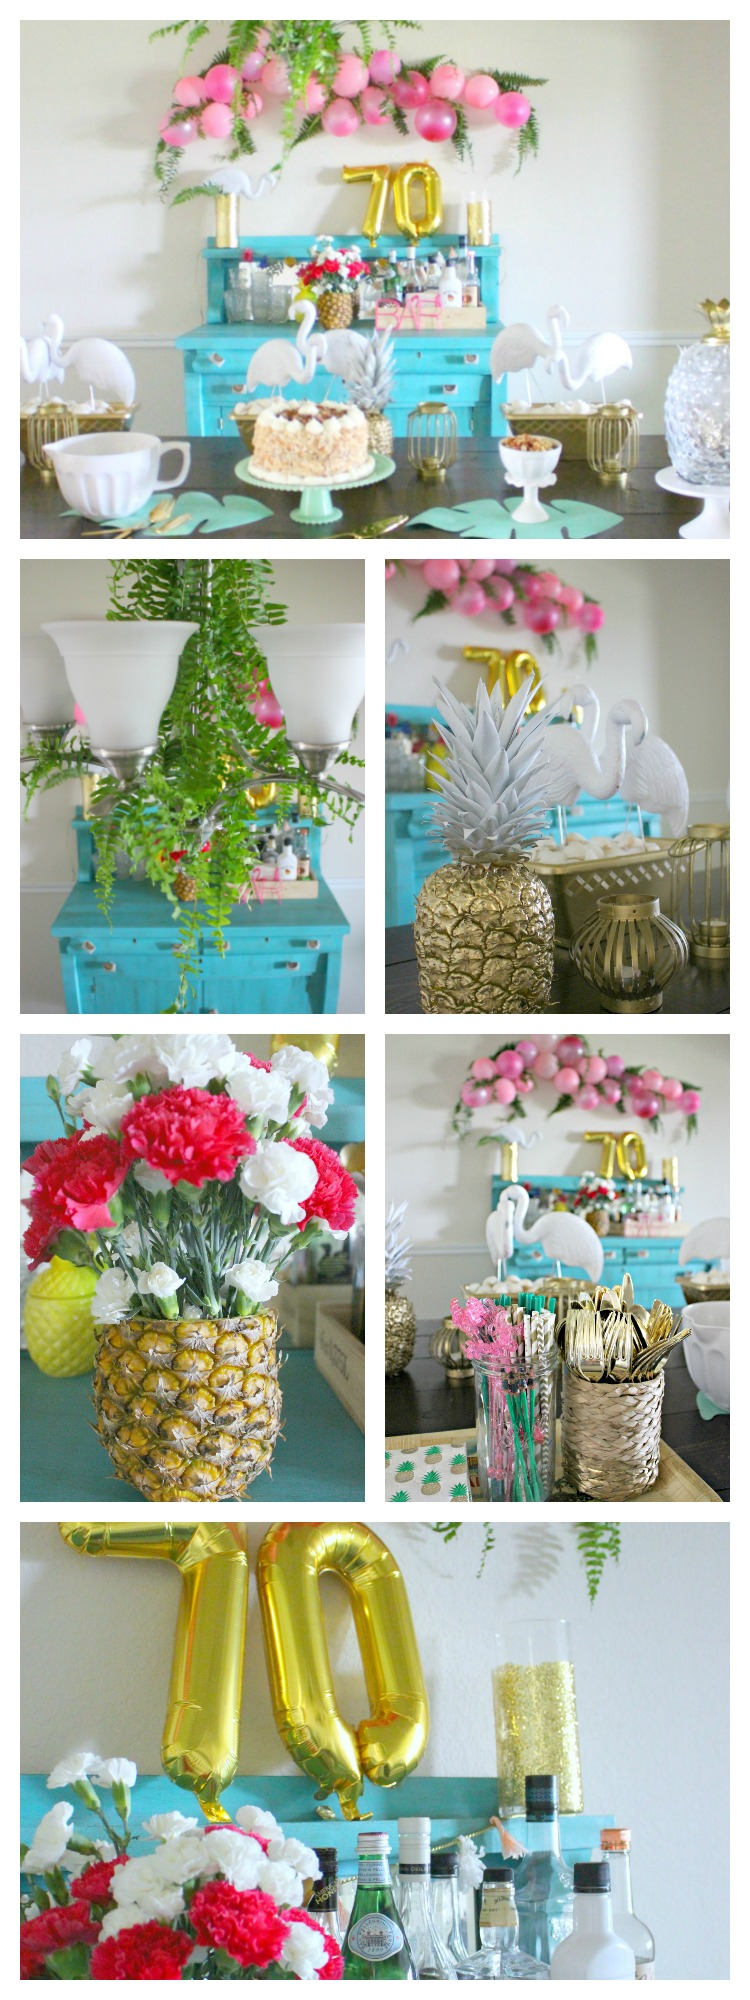 DIY Tropical Party Decor & Ideas